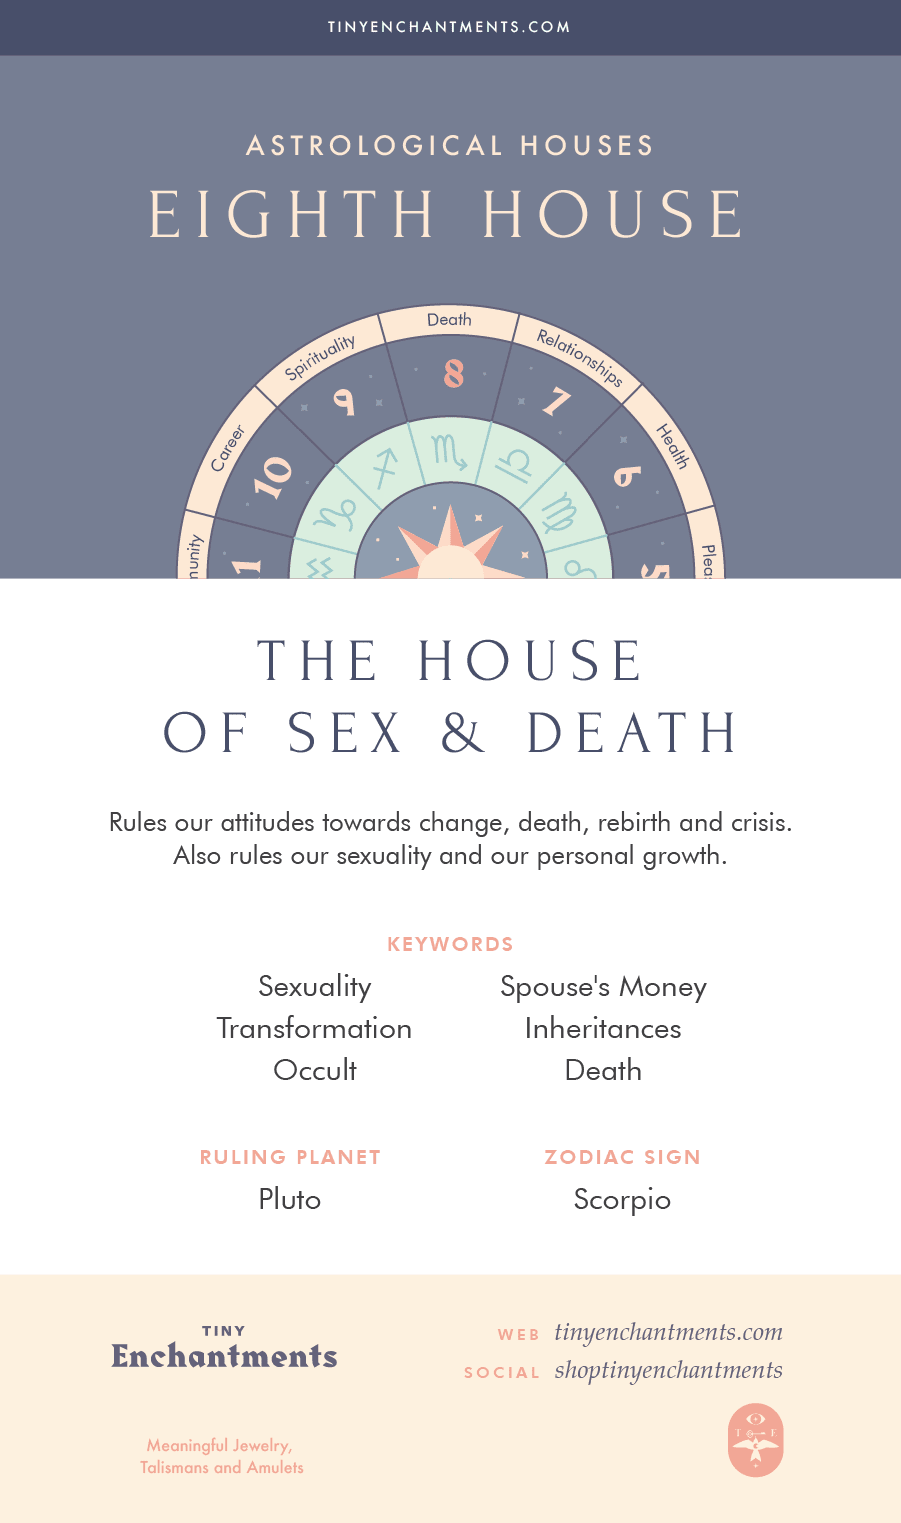 The Eighth House - The House of Sex and Death - 8th House in Astrology, Meaning, Ruling Planets, Ruling Zodiac Signs